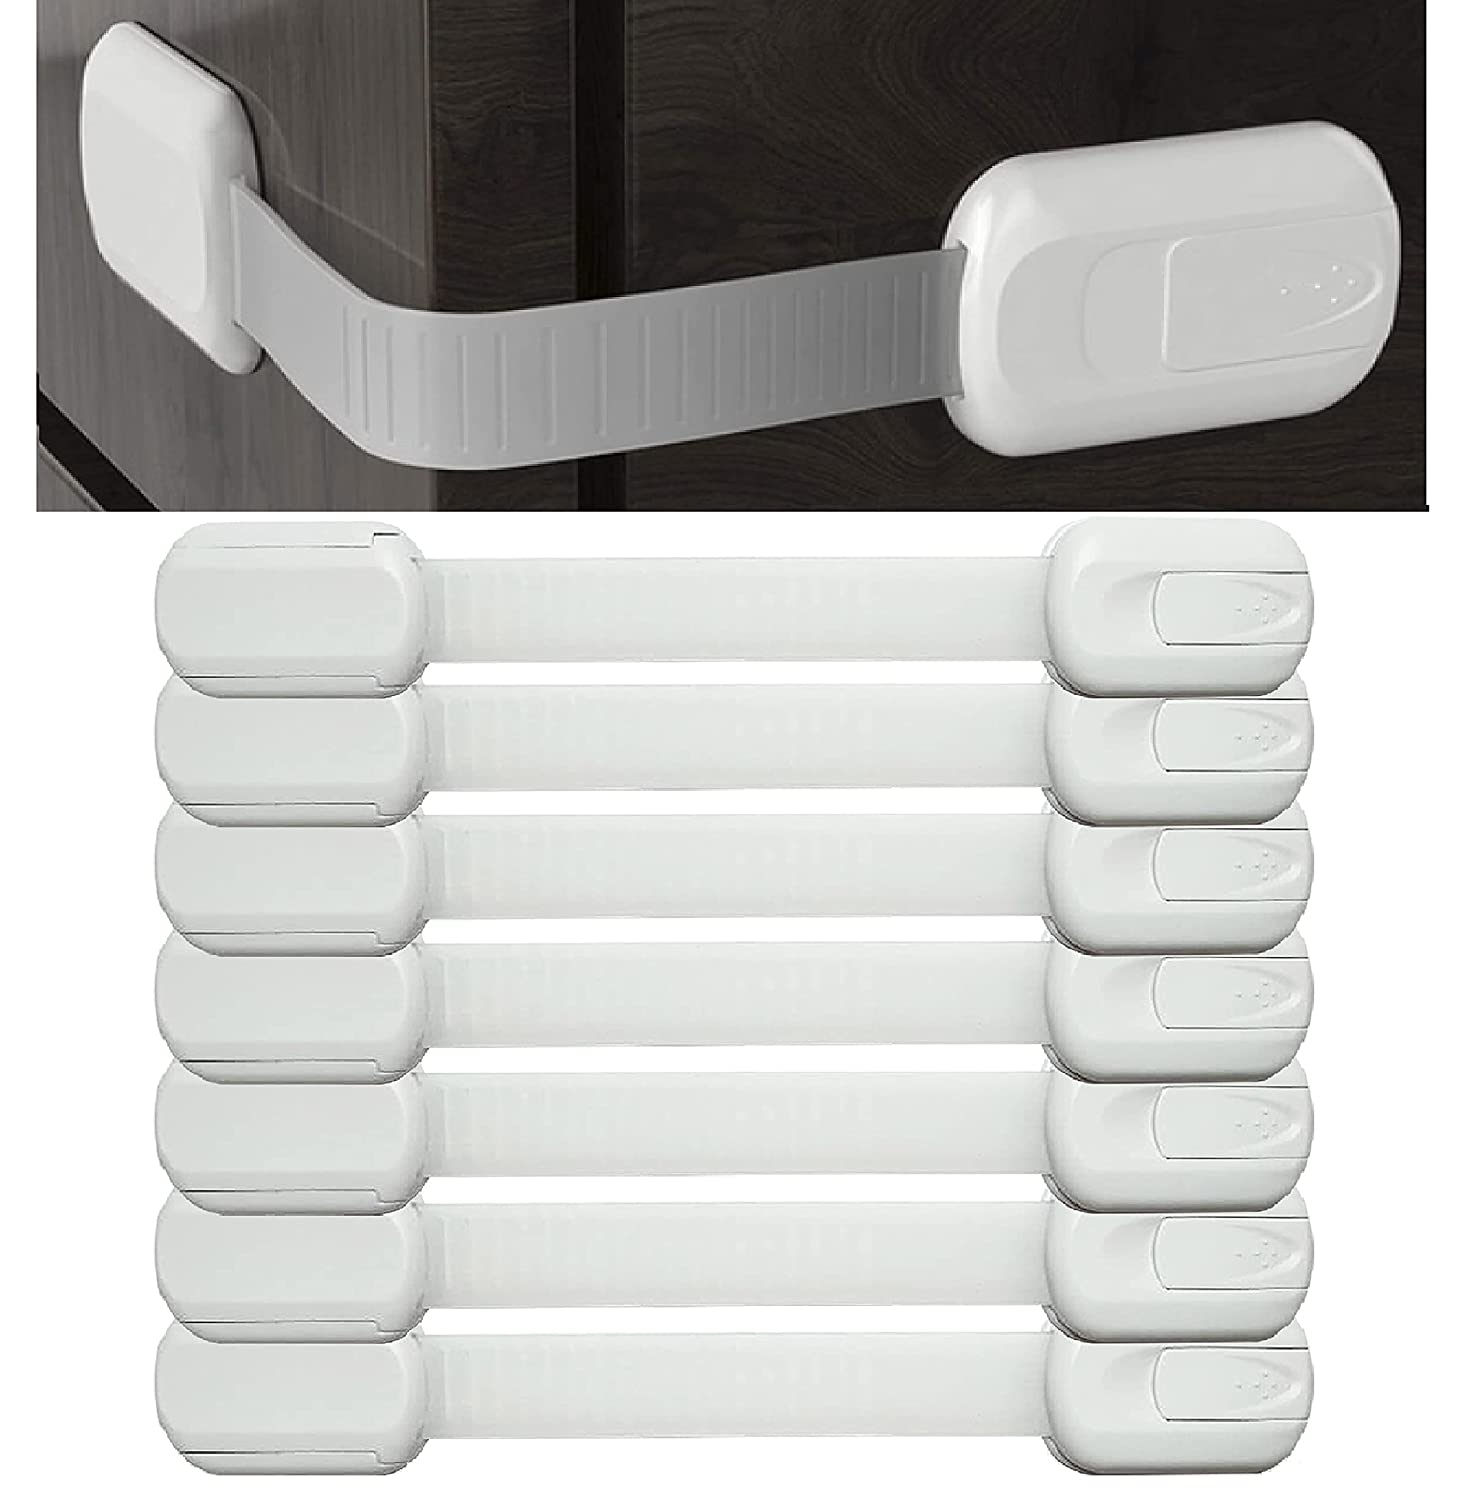 Baby Proofing Cabinet Strap Locks – Shipping included Child 8 Packs Proof Nippon regular agency Saf